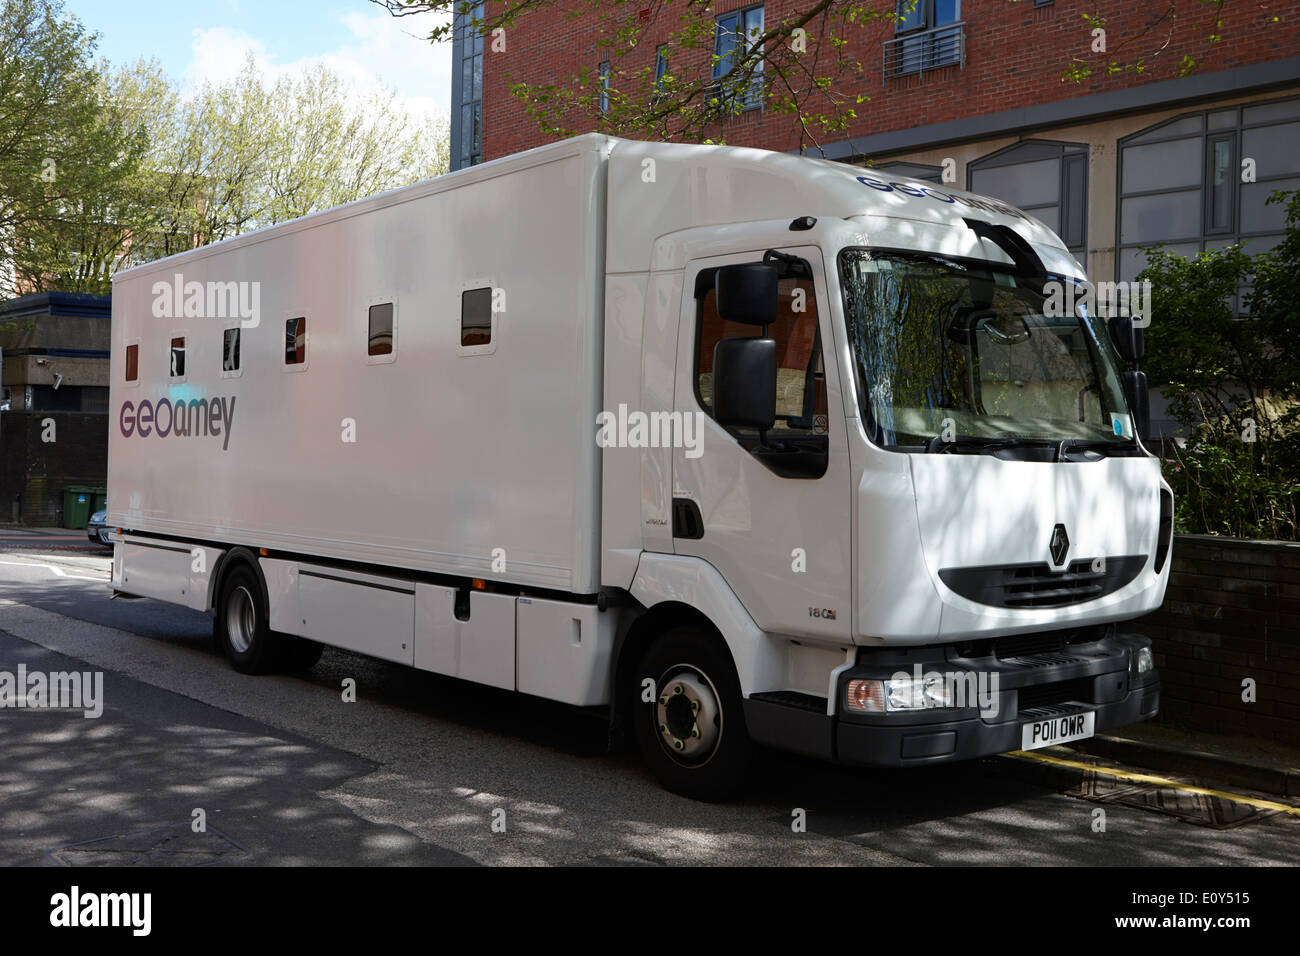 geoamey prisoner escort and custody service vehicle Preston England UK - Stock Image